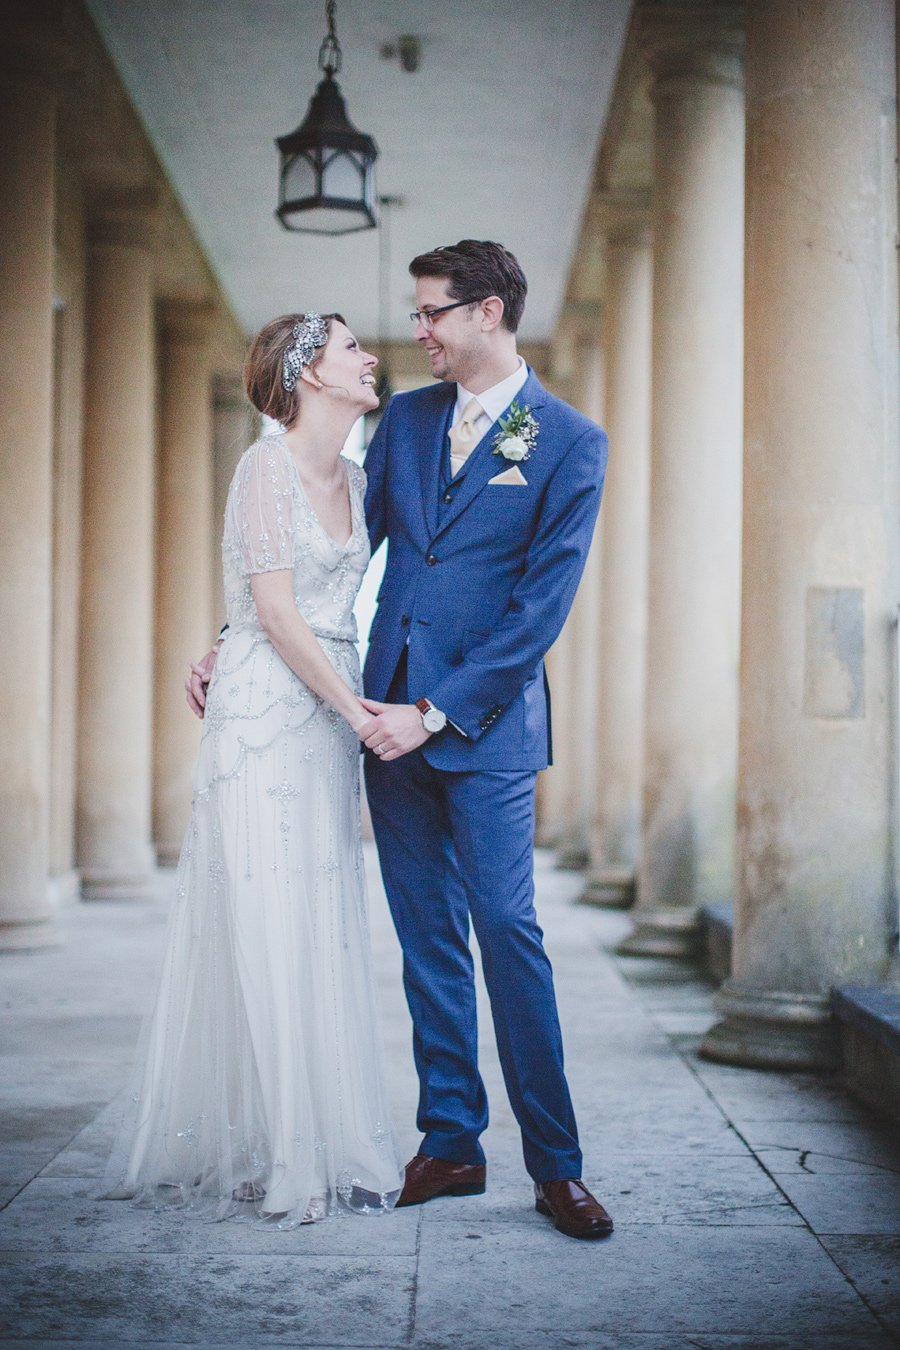 Buxted-Park-Wedding-Photographer-Suzanne-and-Matt-Simon-Fazackarley-63